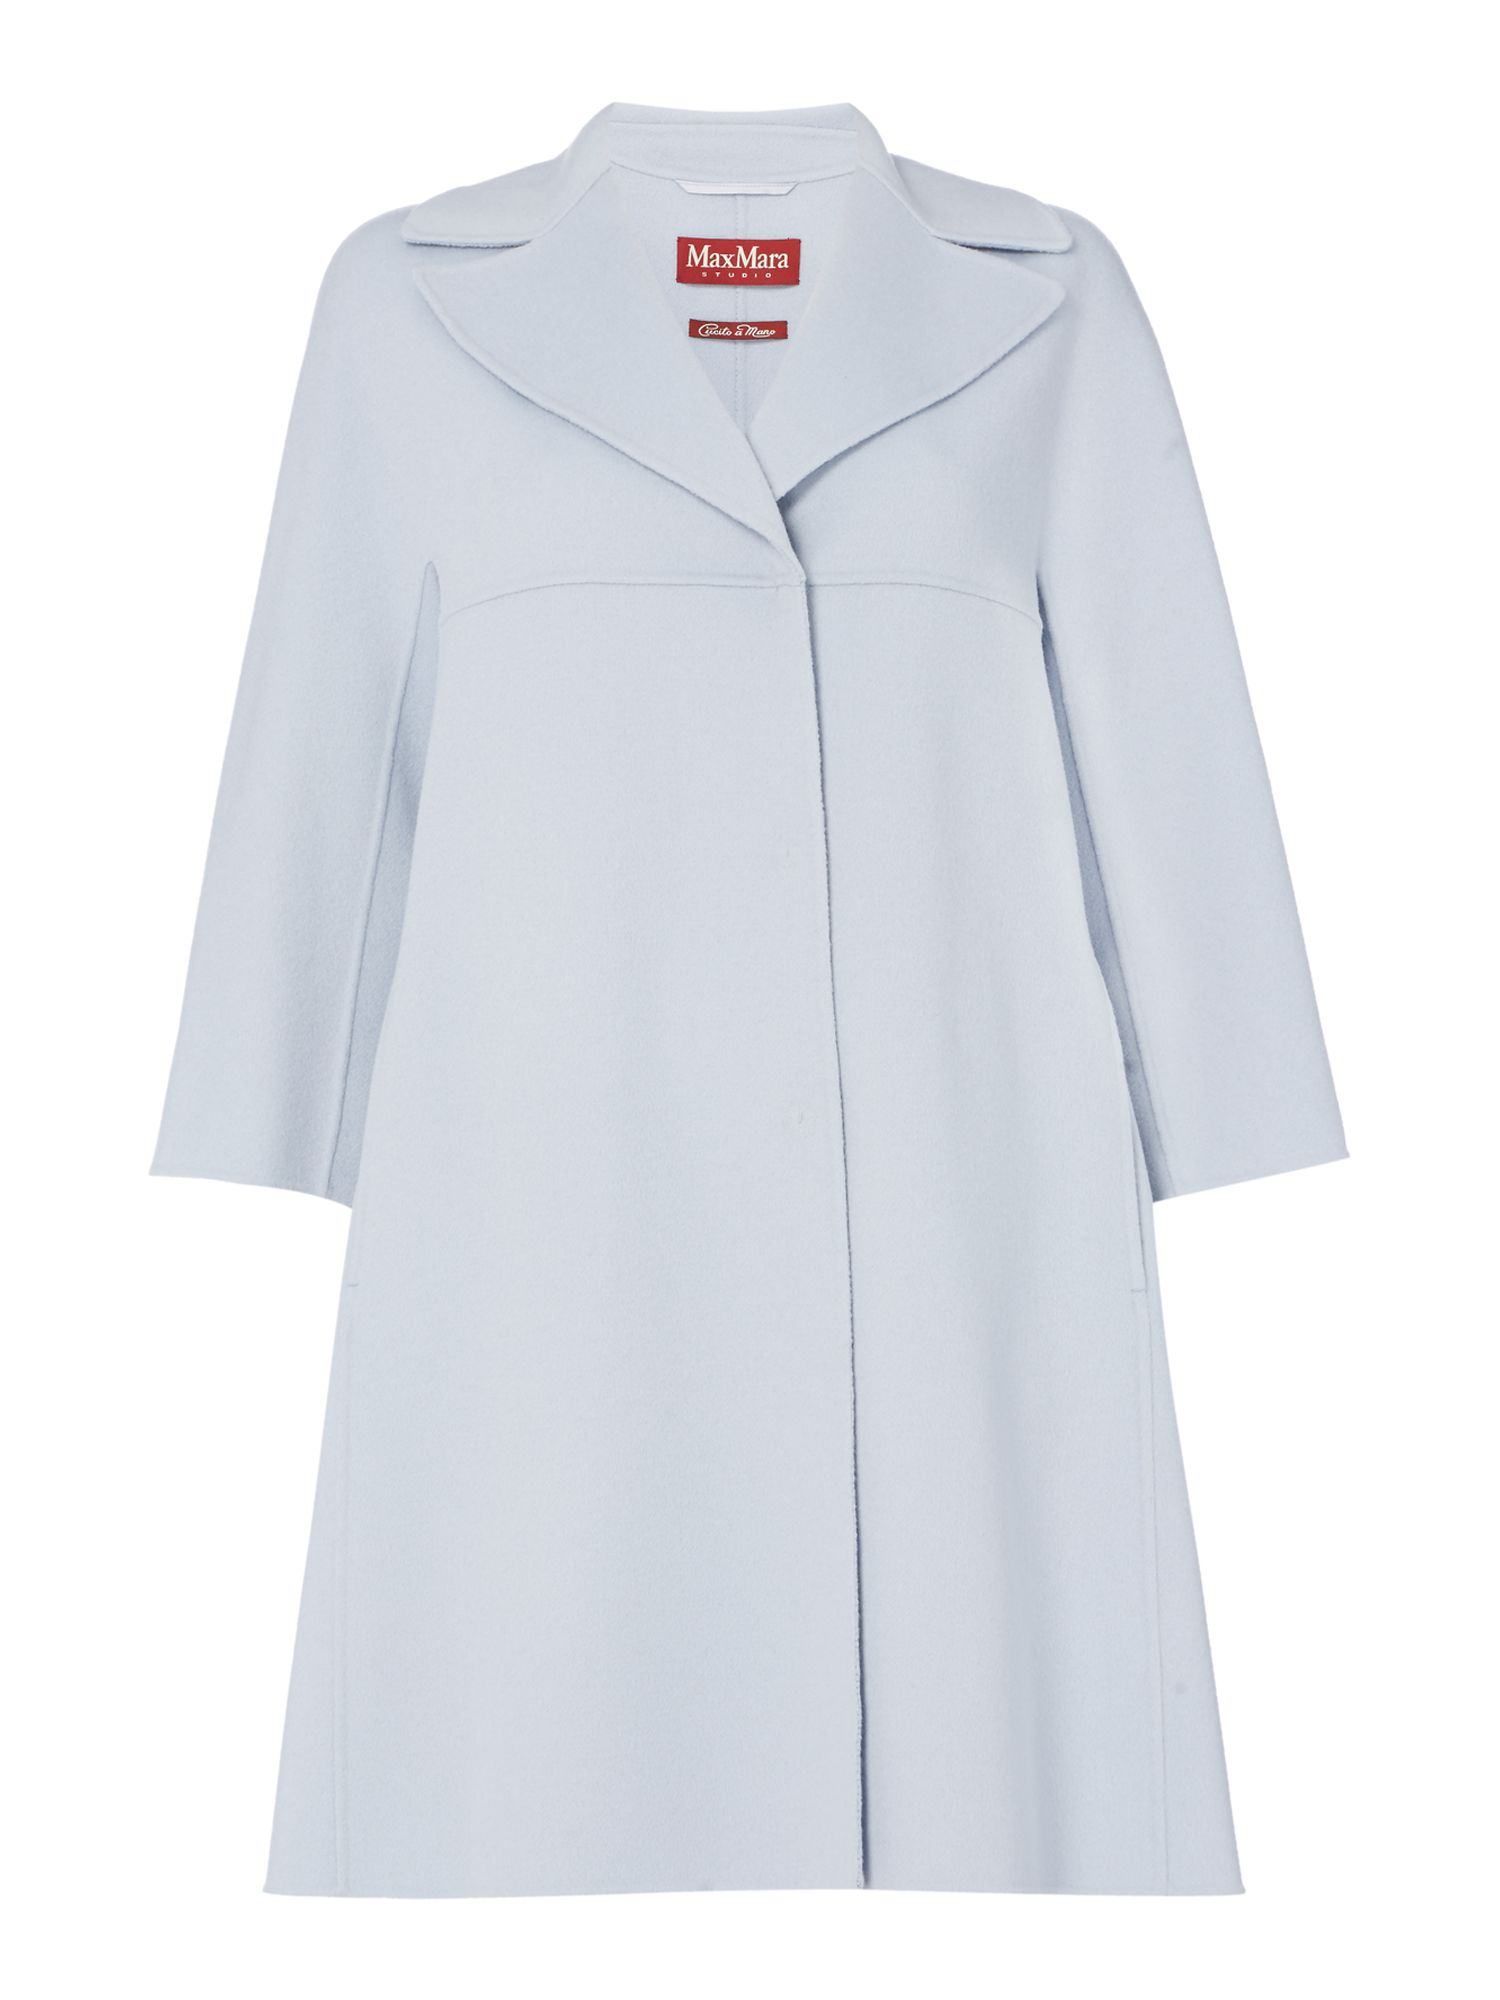 Max Mara Studio Baleari longsleeve light blue coat, Light Blue